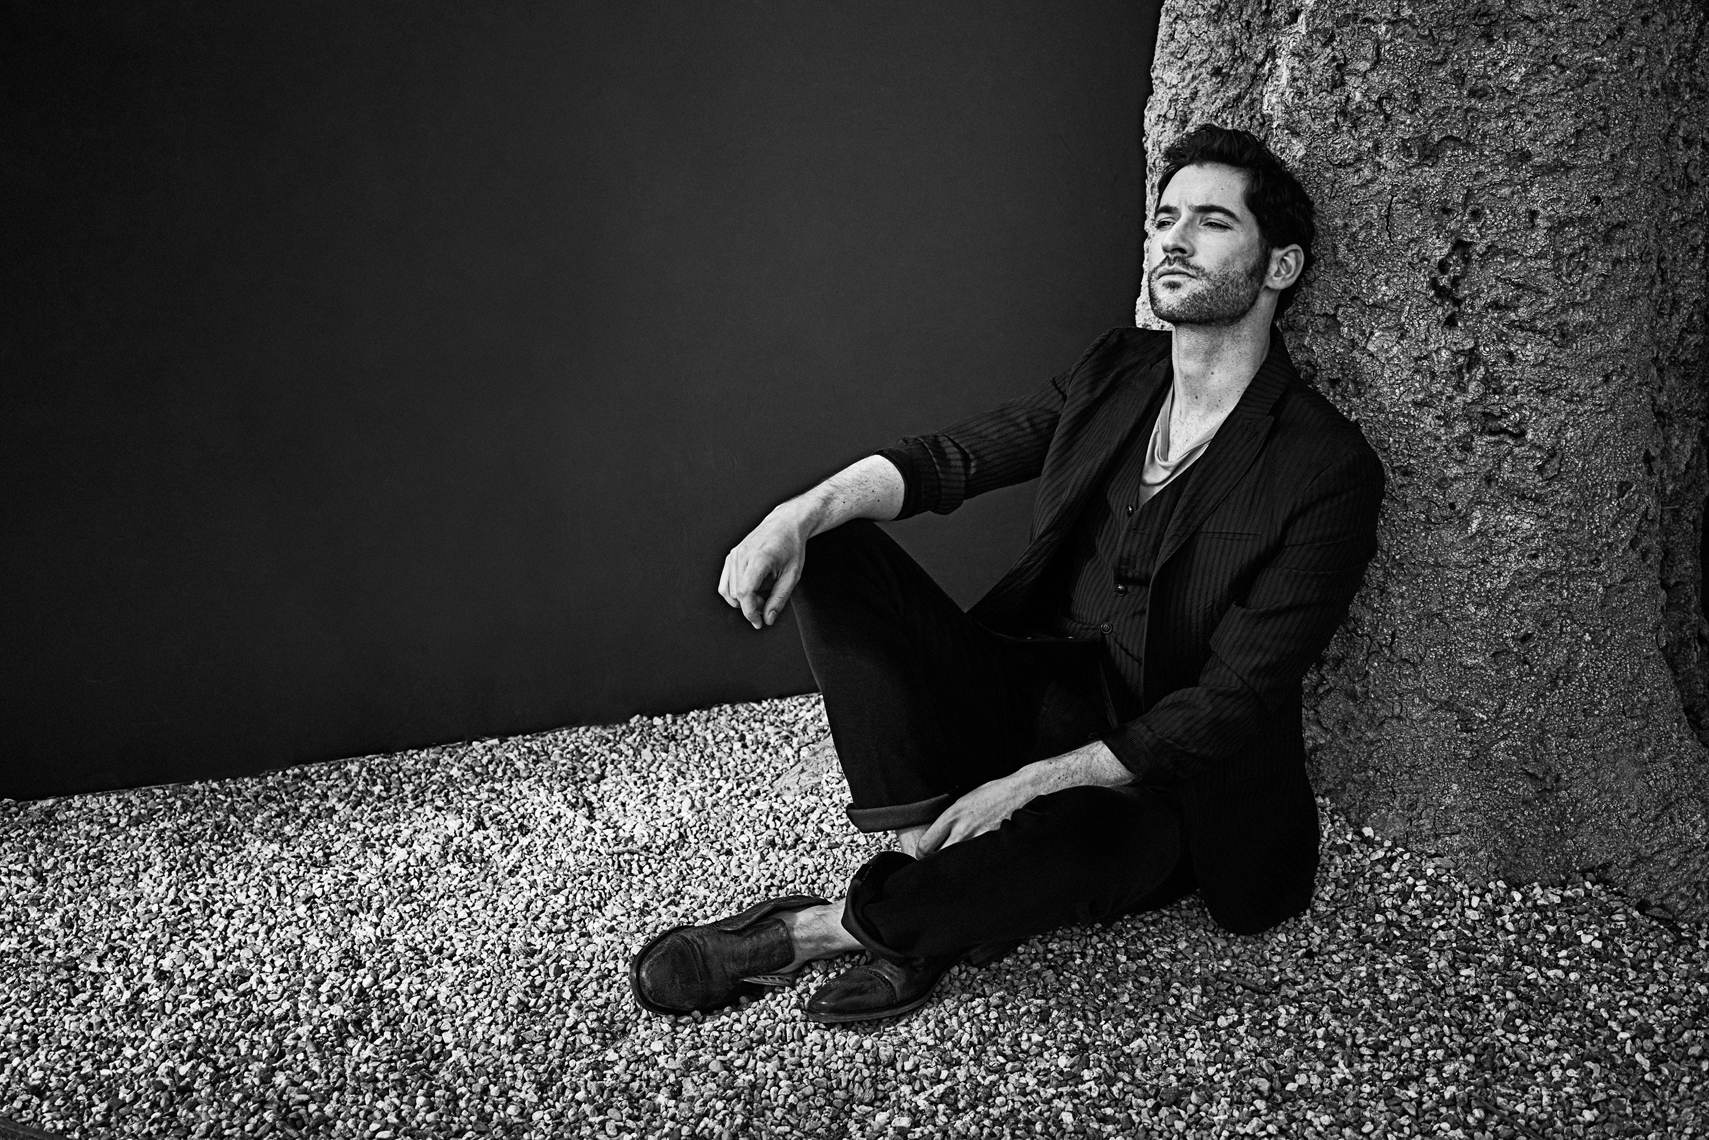 TOM_ELLIS_RAINER_HOSCH_04